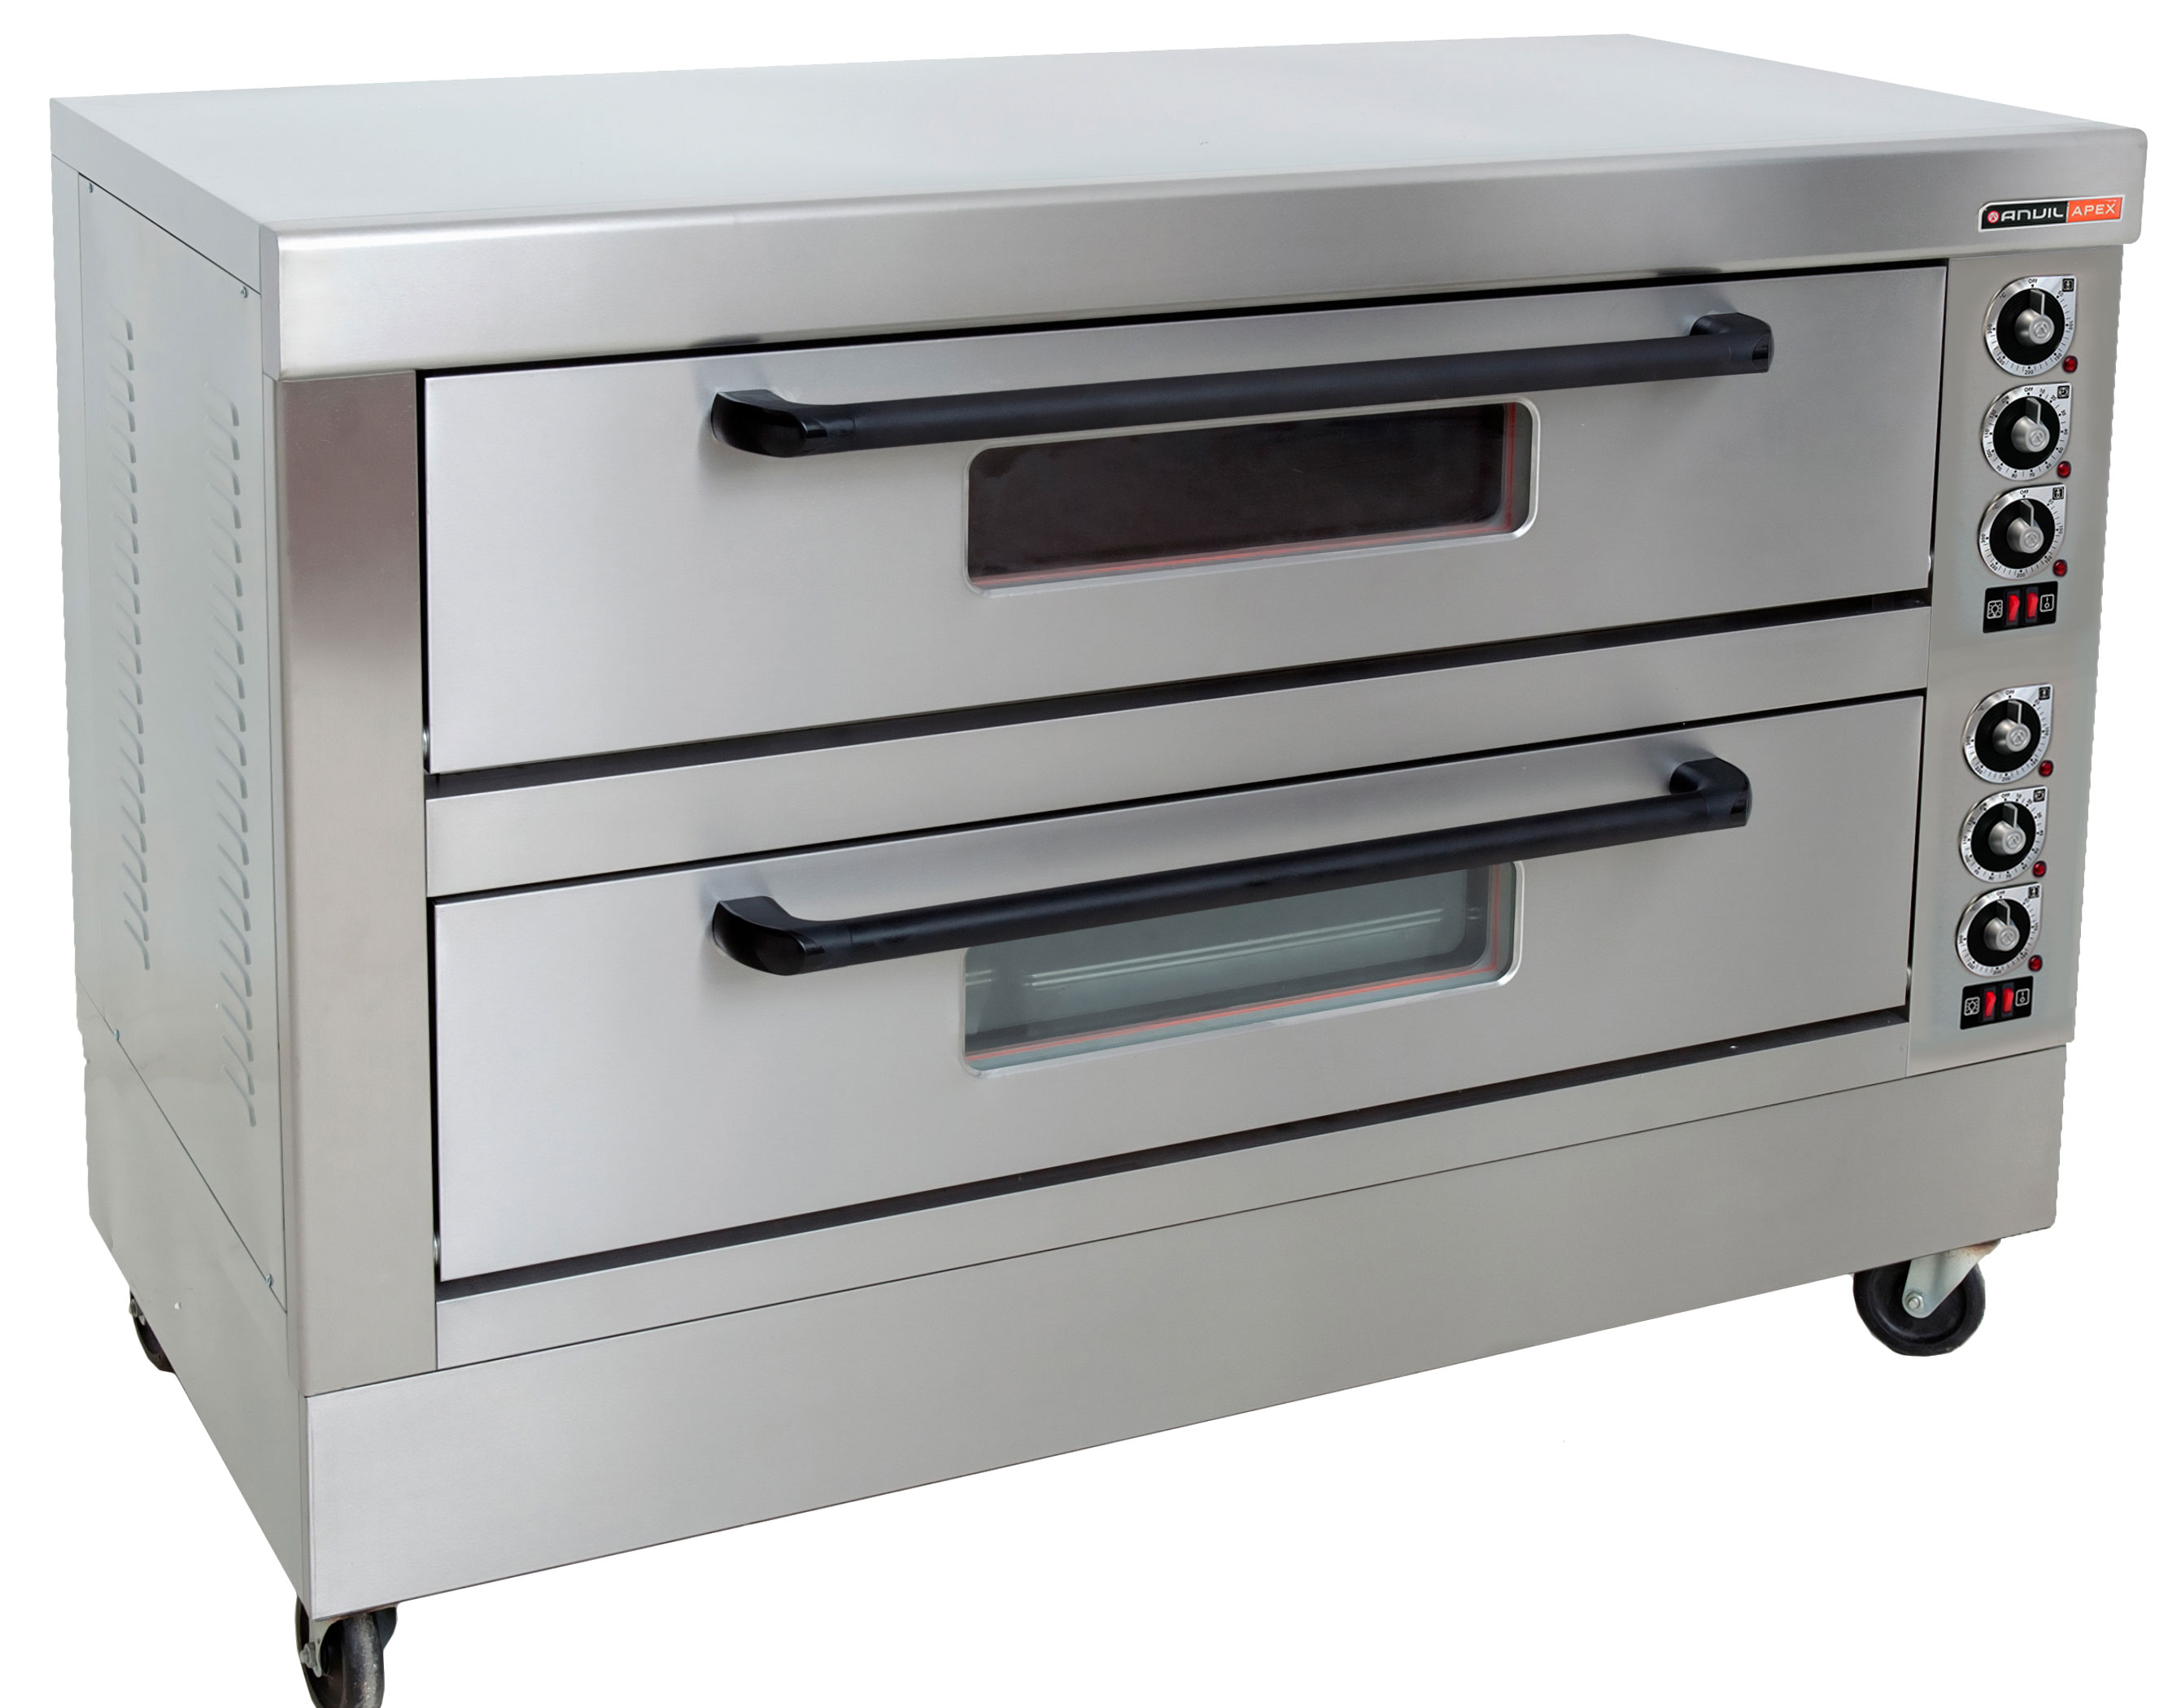 DECK OVEN ANVIL - 6 TRAY - DOUBLE DECK